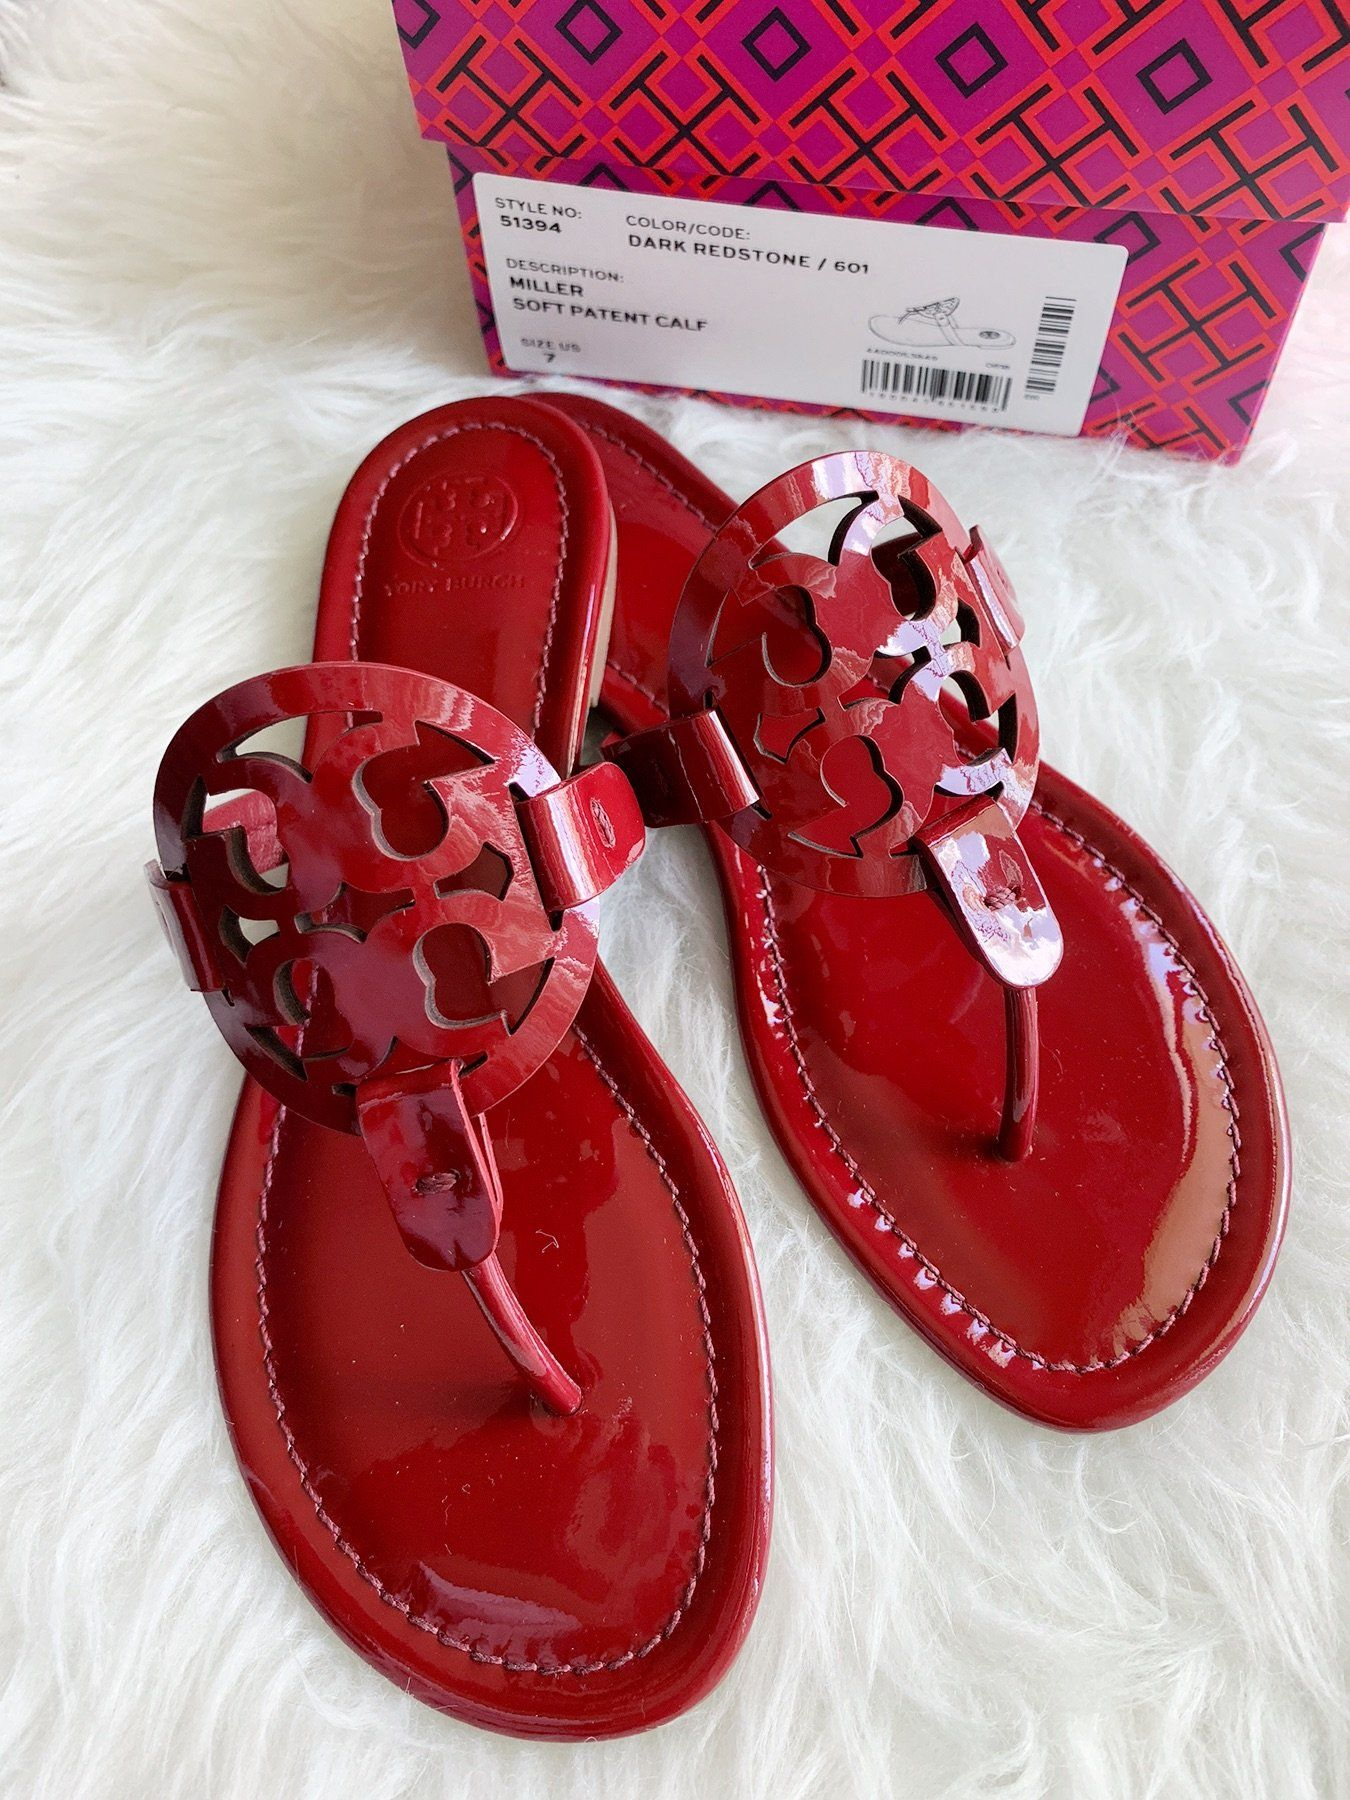 3cf0912ef937a Tory Burch Miller Sandals Flip Flop Dark Red Stone 7  ebayseller   tradesyseller  rated  ebaycommunity  toprated  ebayfashion  Handbags   poshpackages ...